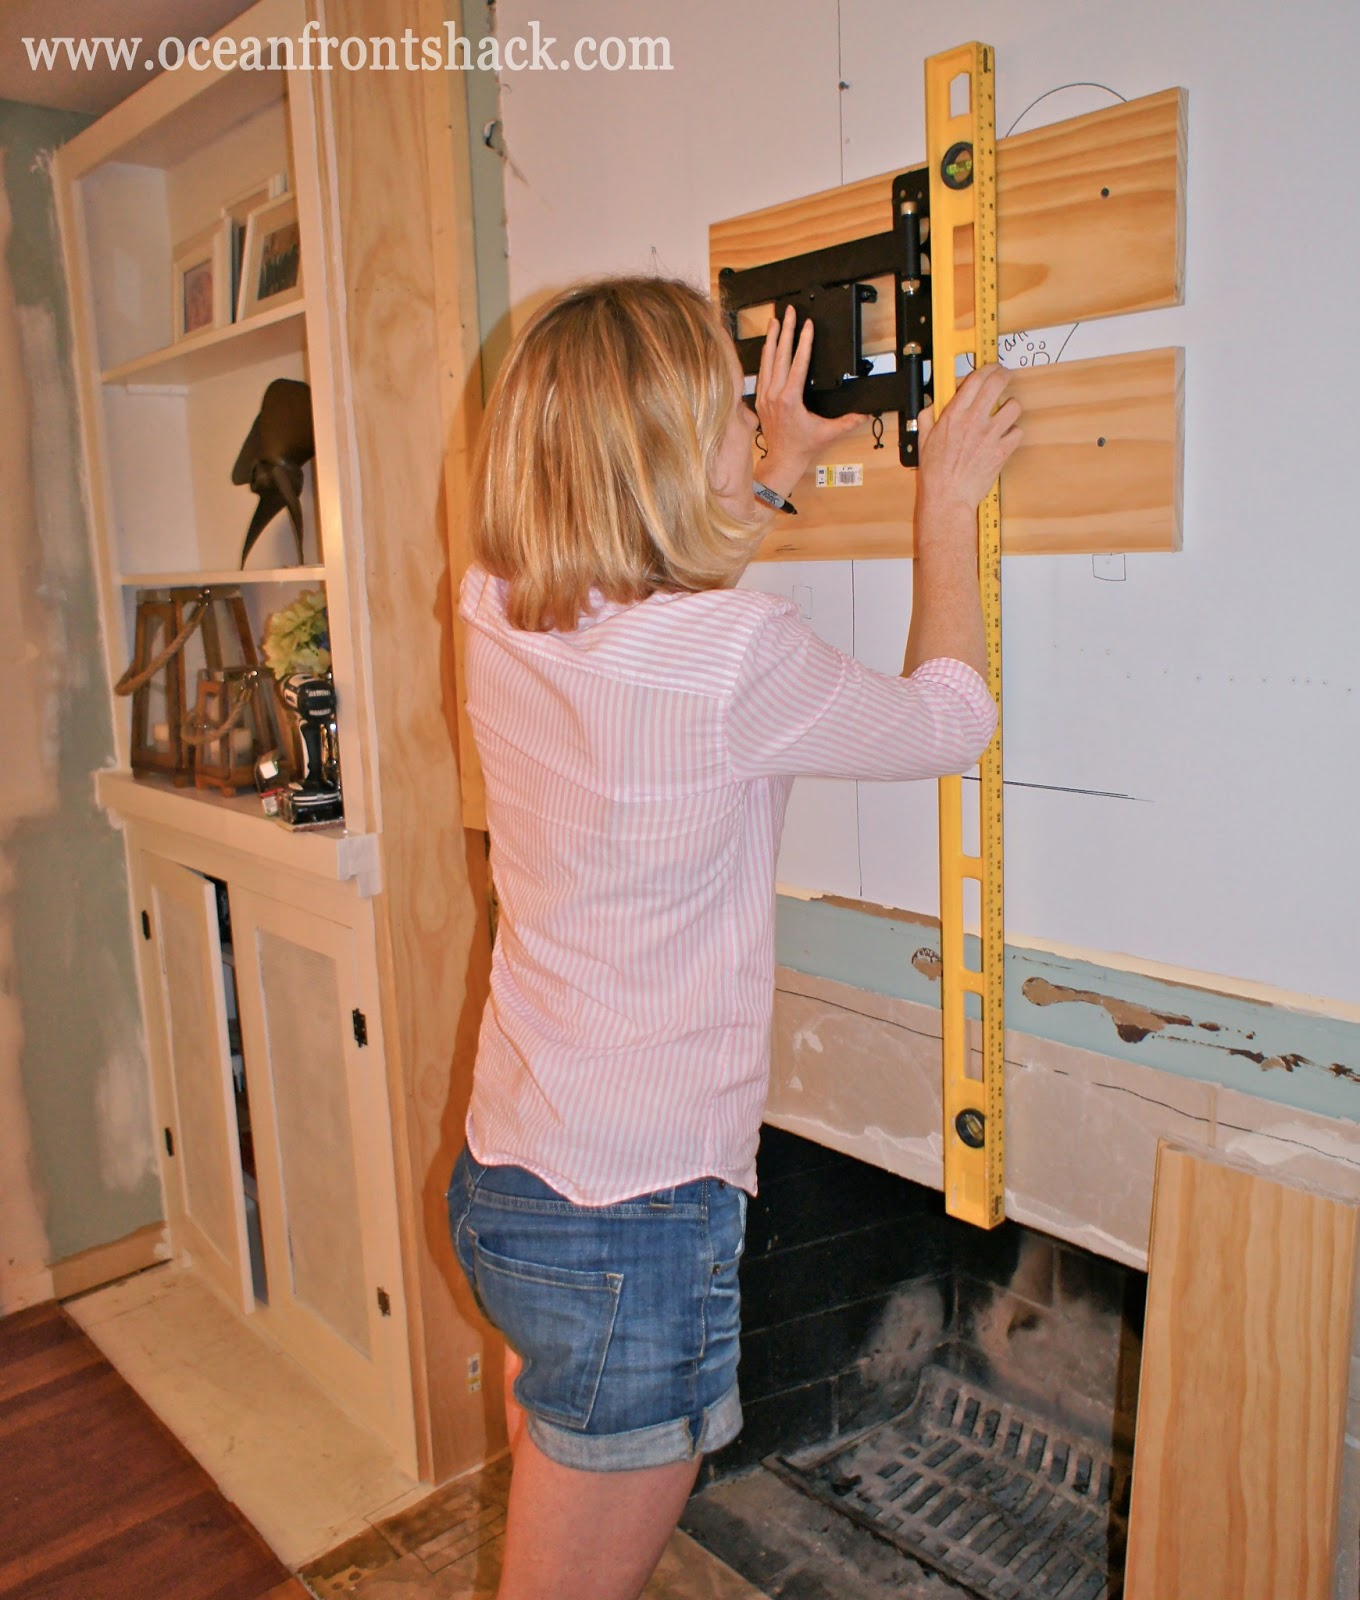 Wall Mounting The Tv Ocean Front Shack How To Run Wiring Through Studs